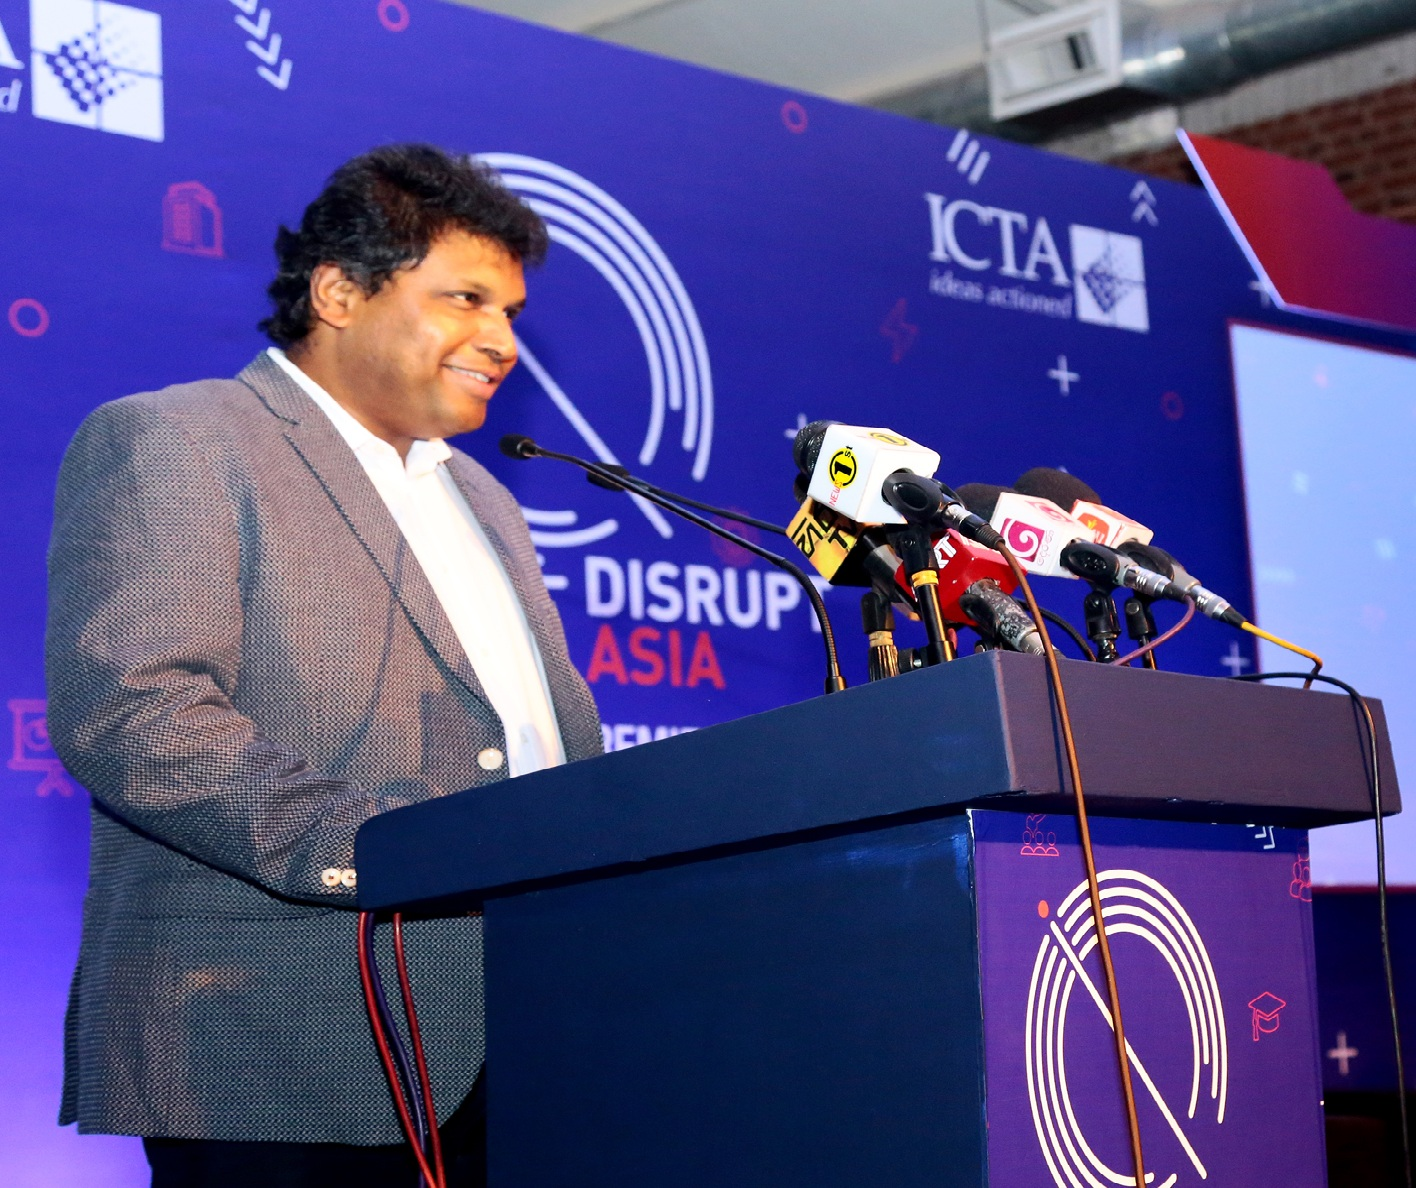 Pic 3 - Mr. Muhunthan Canagey - Managing Director - CEO - ICT Agency of Sri Lanka